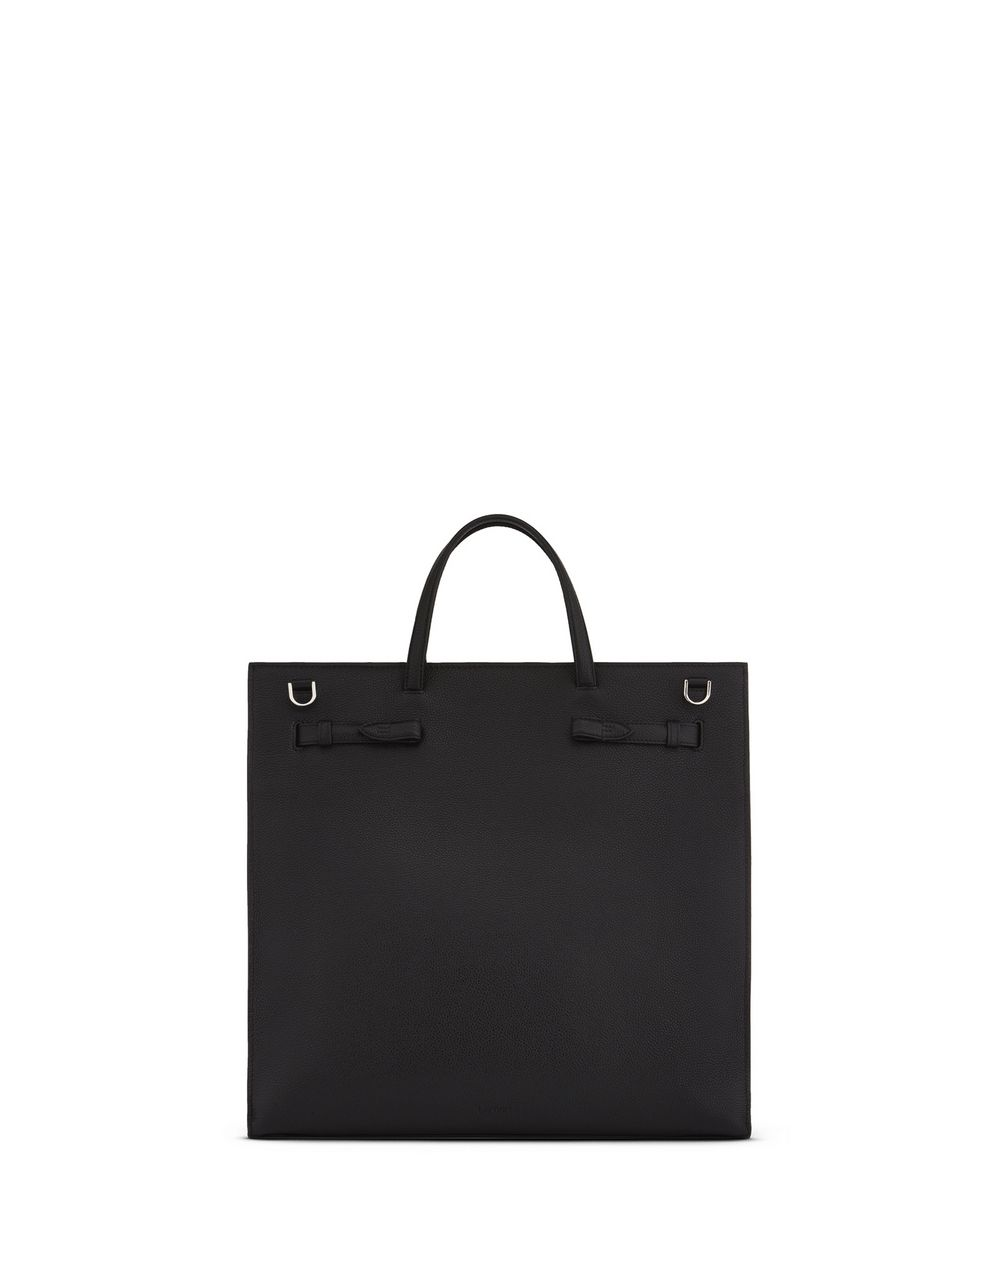 GRAINED LEATHER NORTH SOUTH BOGEY BAG - Lanvin